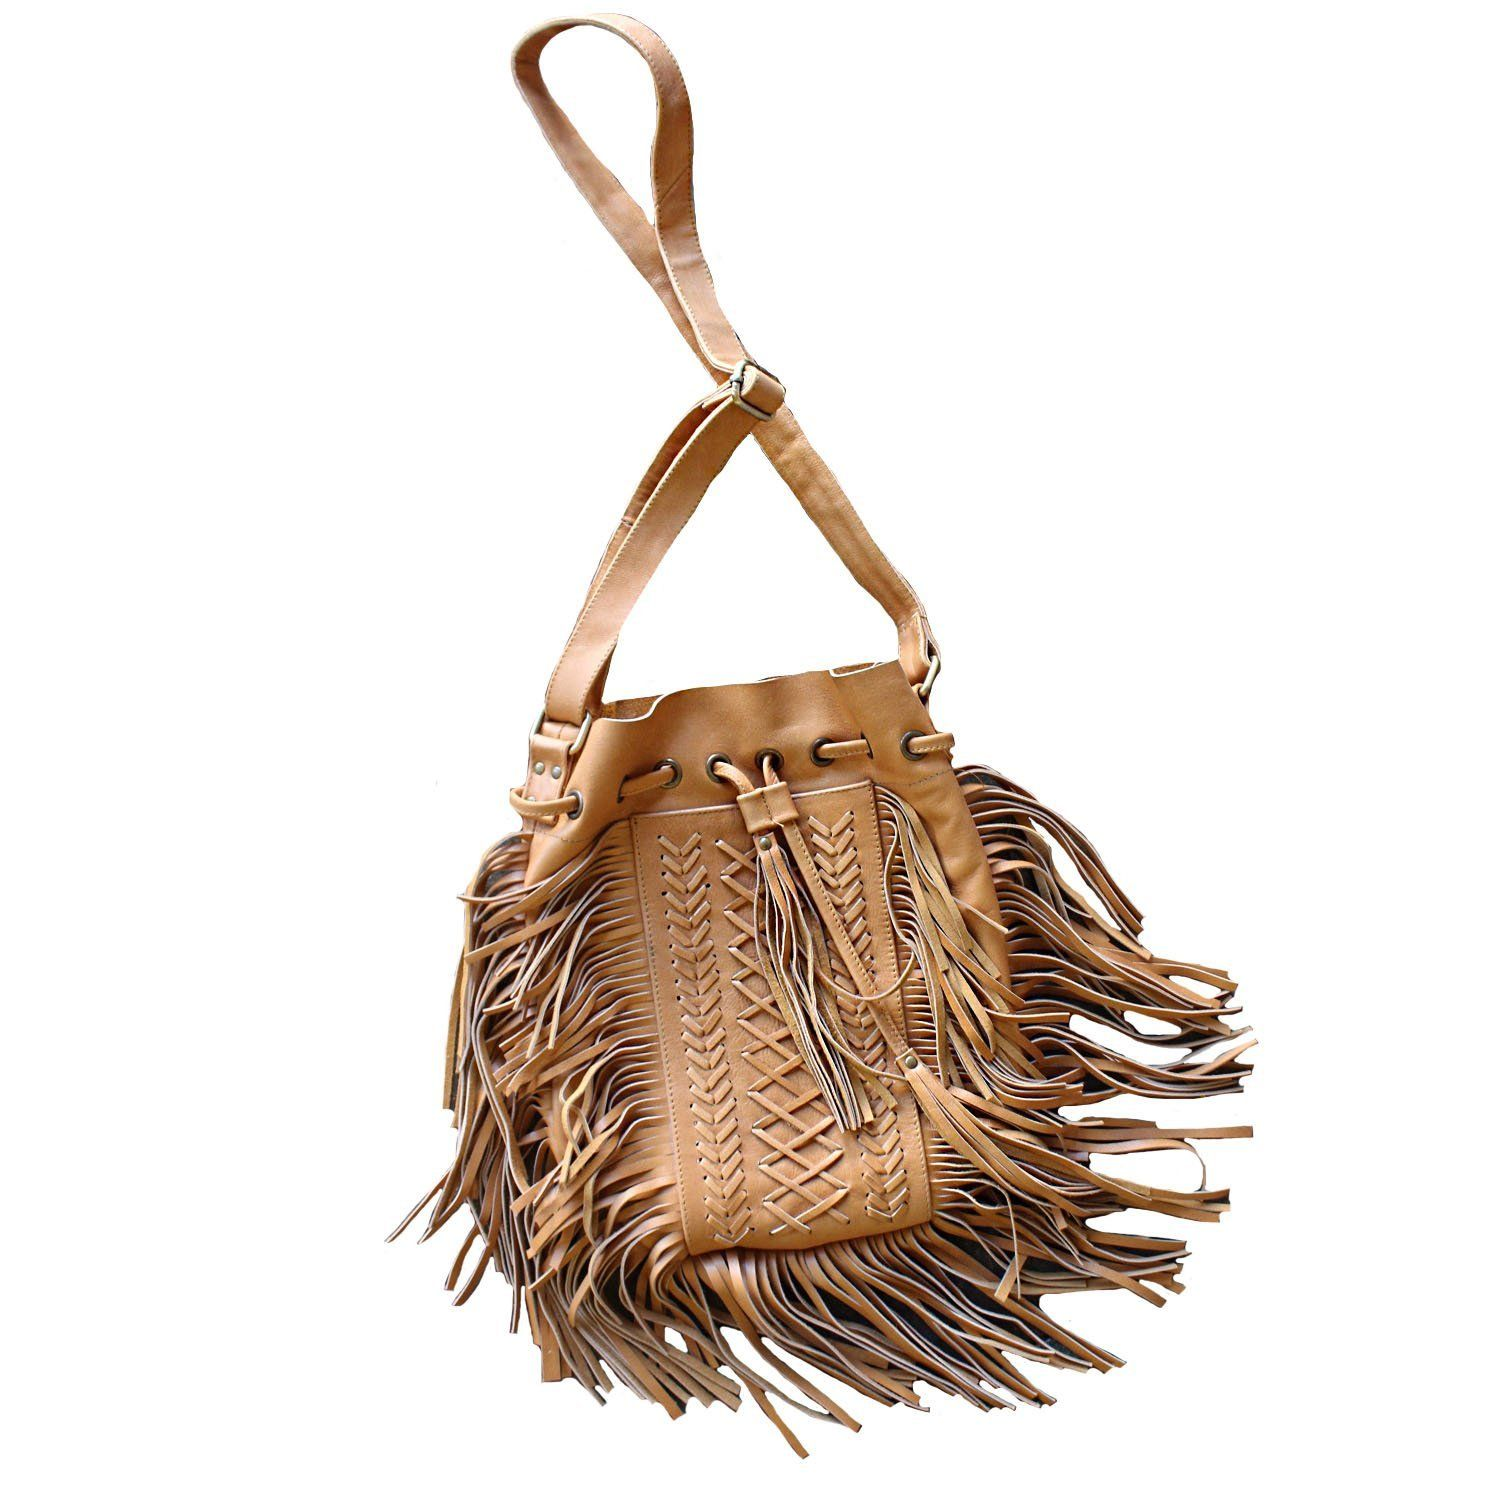 cfcdc4b11 Fringe Leather Bag Delicate Weaving with Fringe Bag 12.5 Inches Tall by  10.5 Inches Wide Adjustable Strap Length and Drawstring Opening Available  in Tan, ...